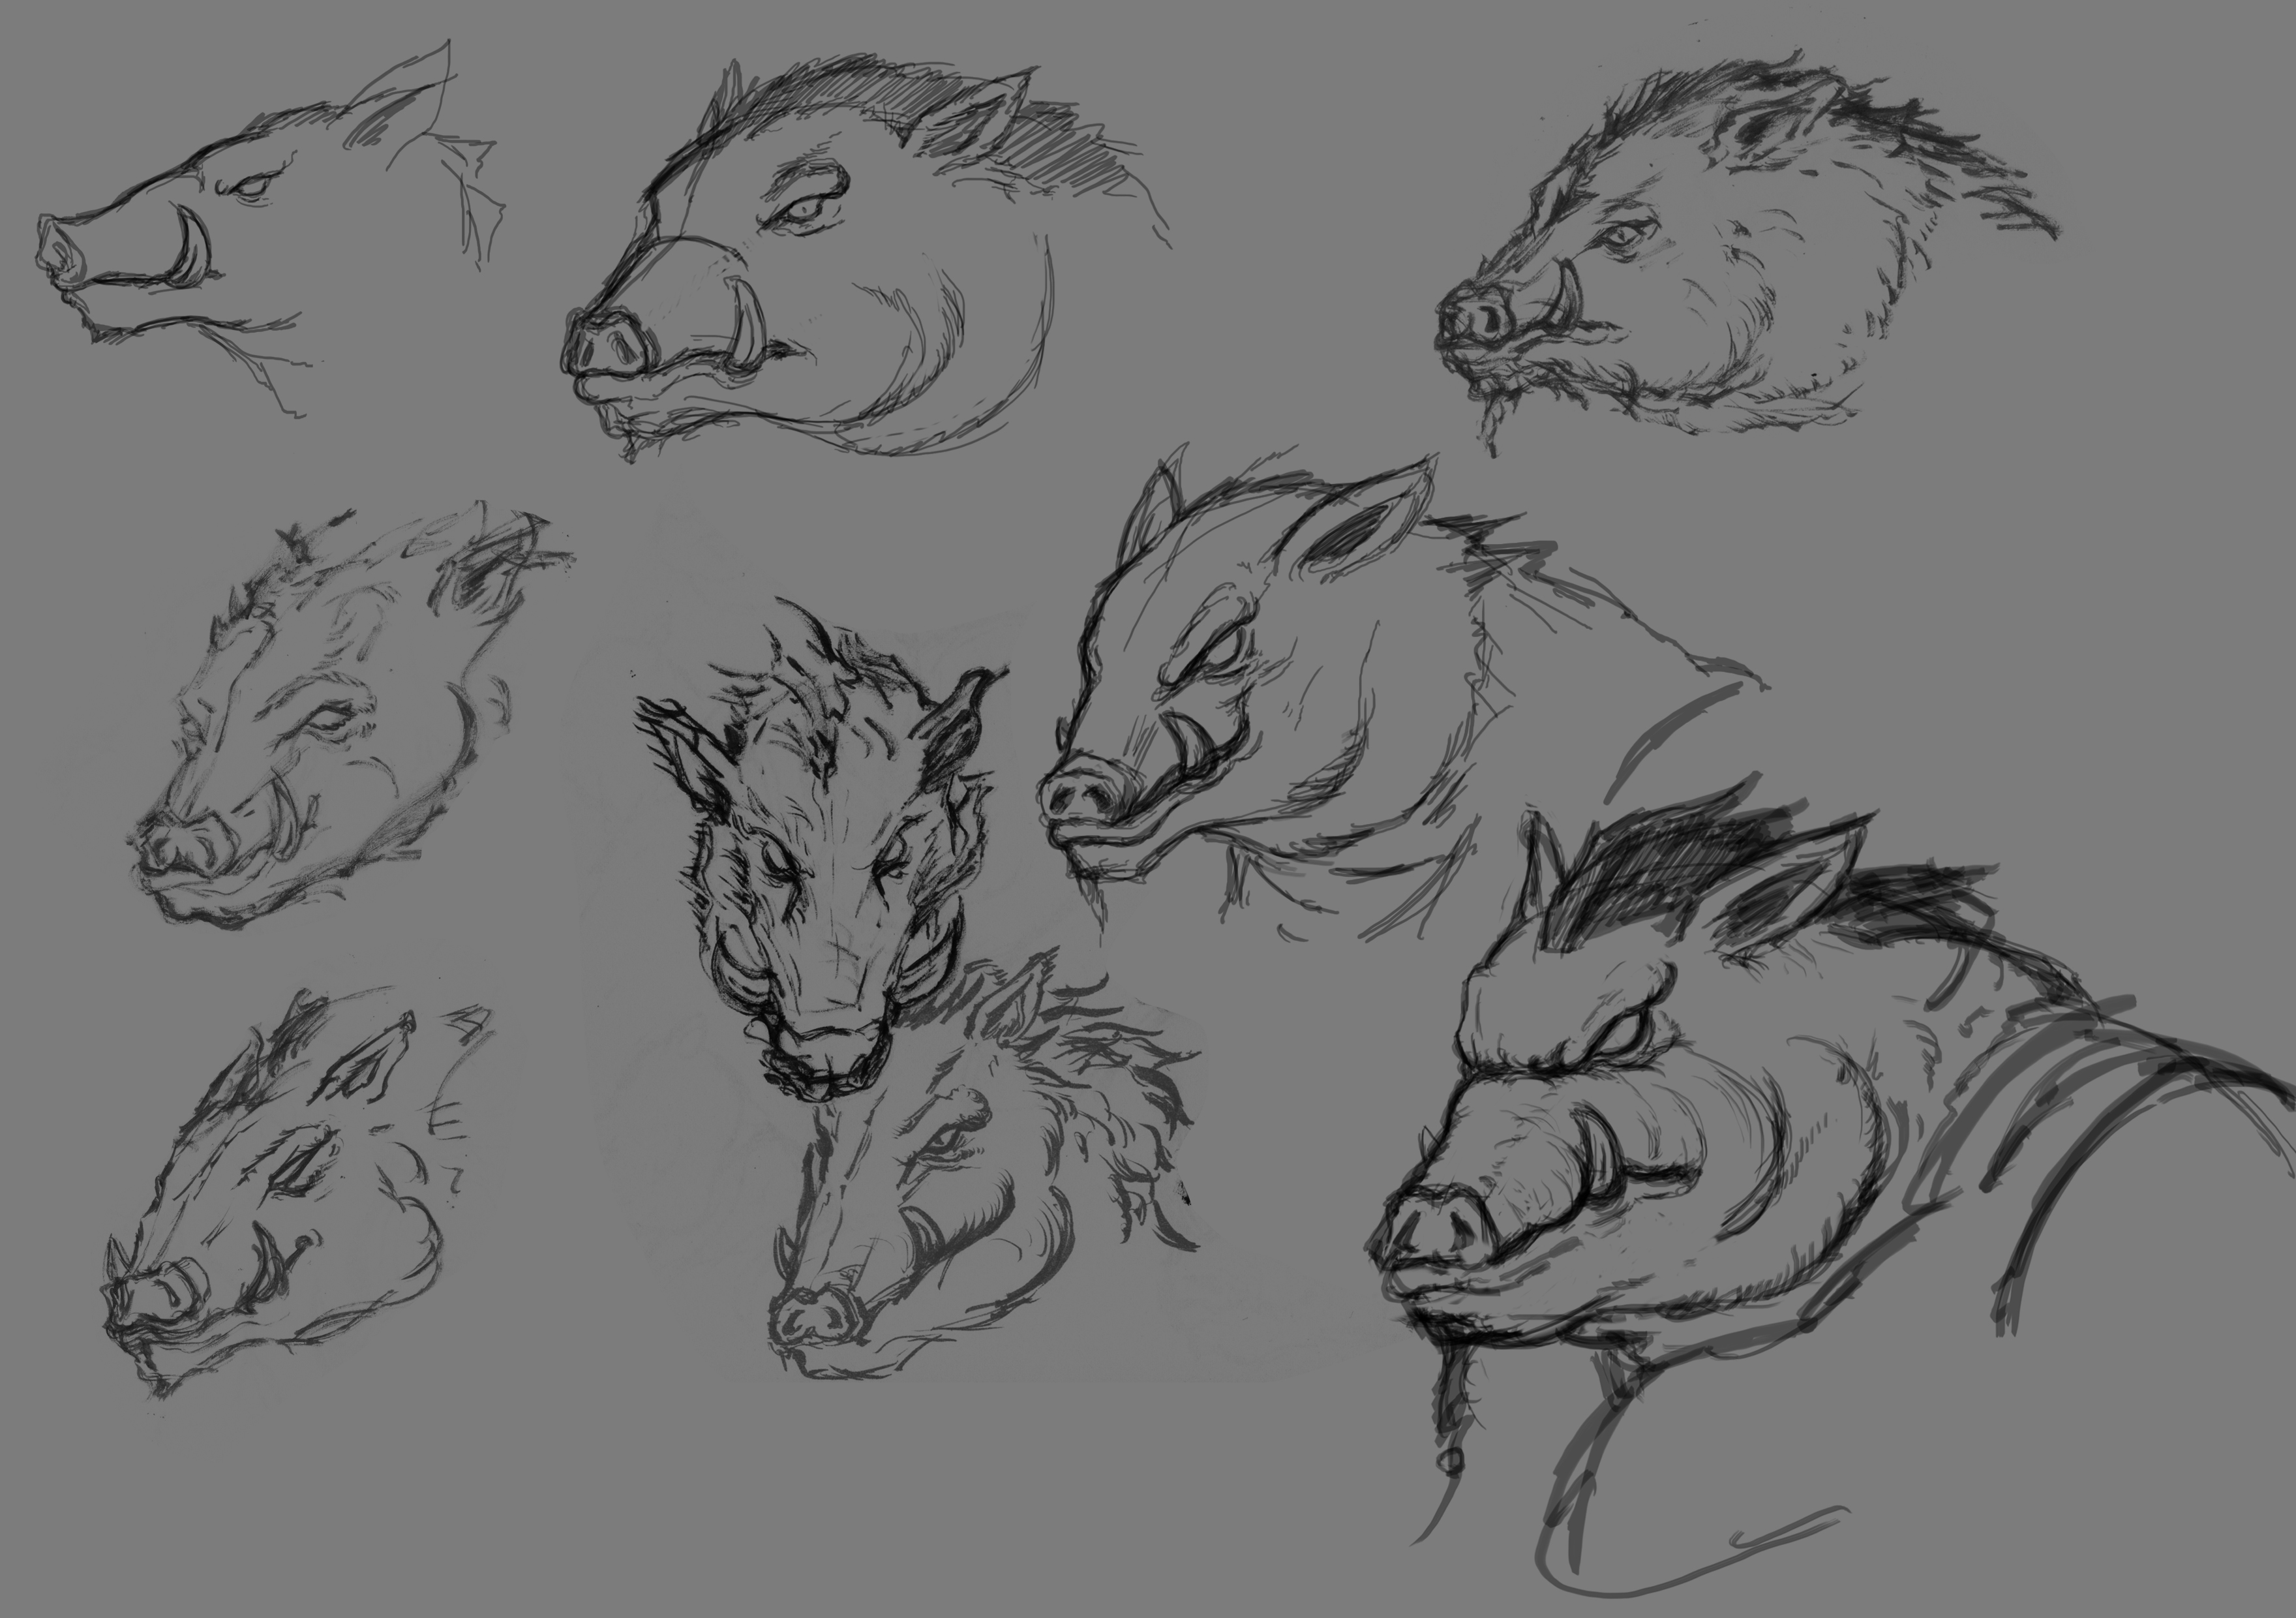 Boar_Character Sheet 1